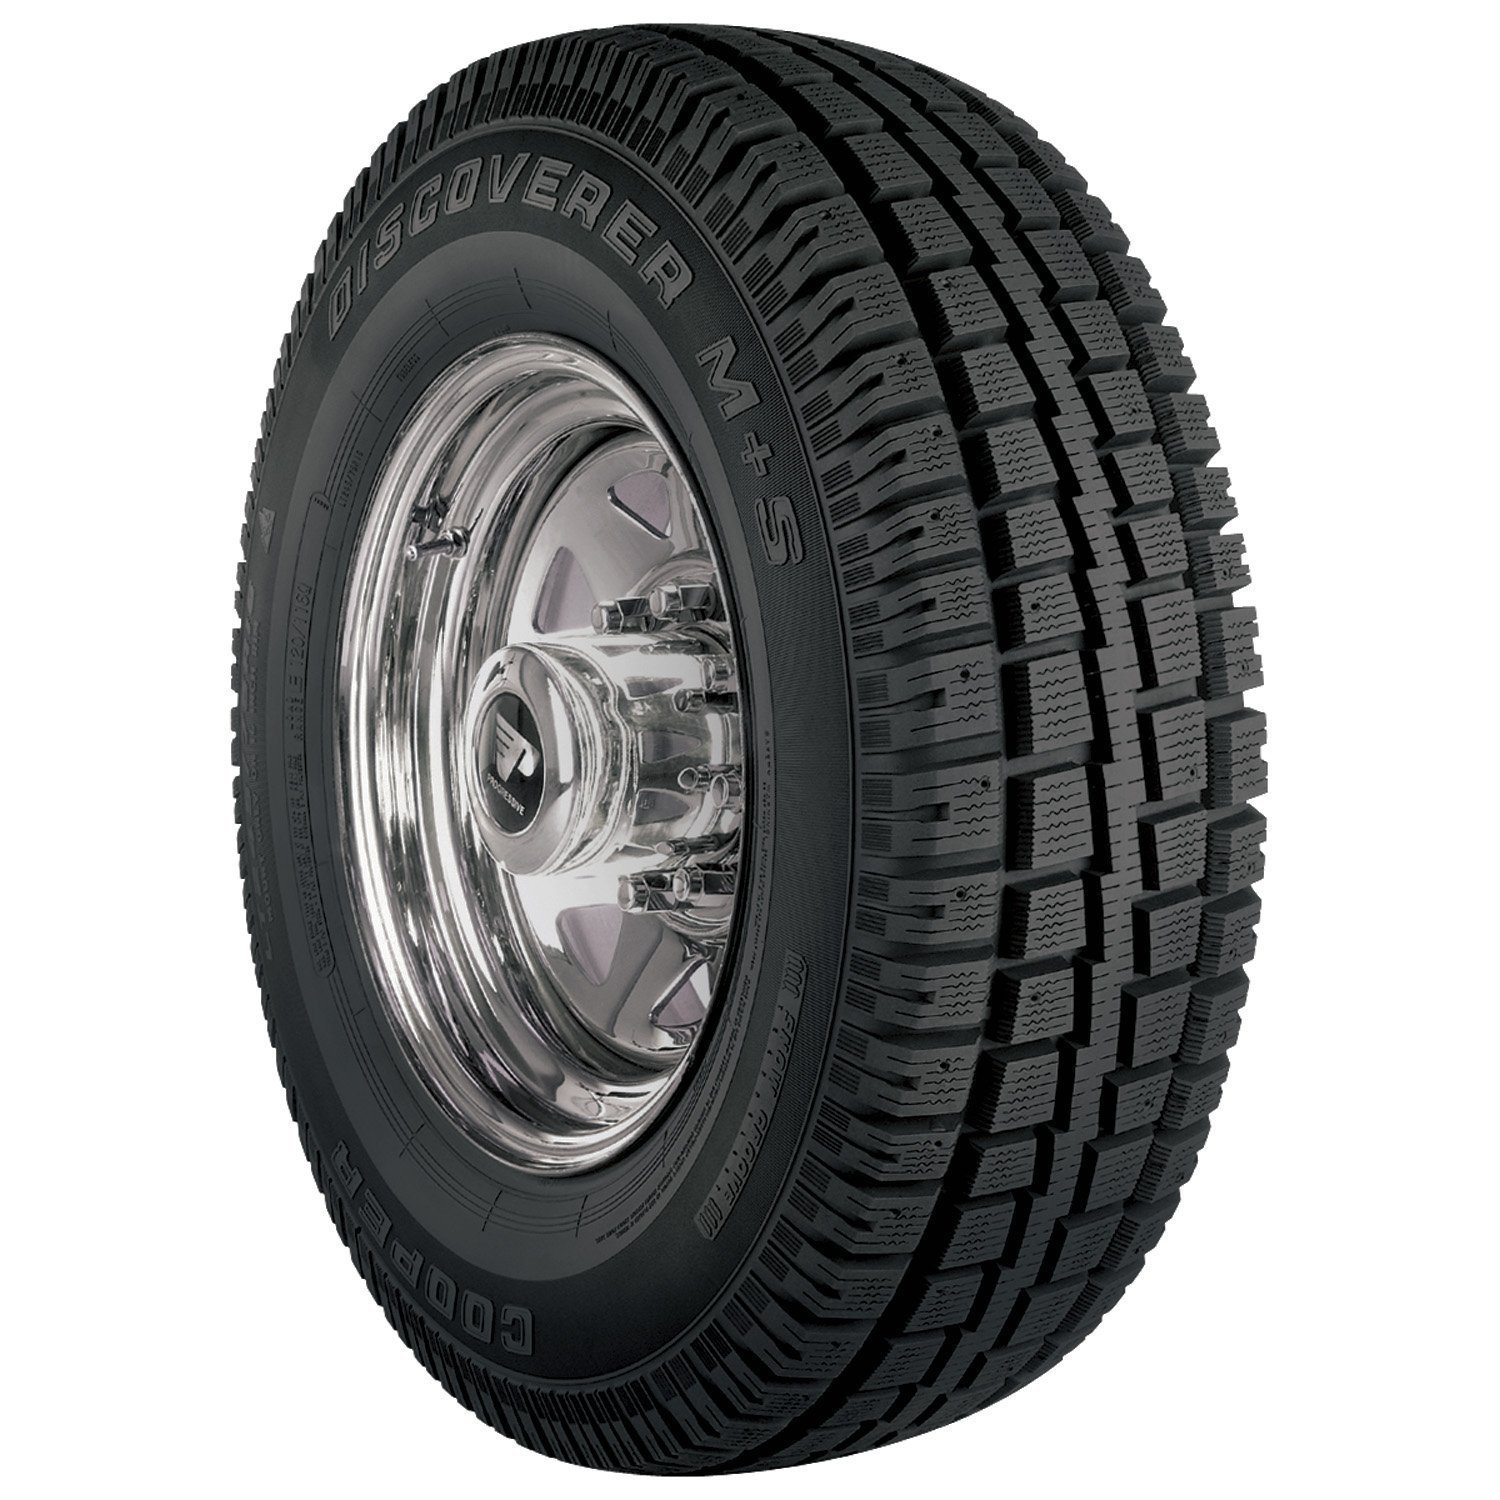 COOPER Discoverer M+S Winter Tire - LT245/75R16 LRE/10 pl...